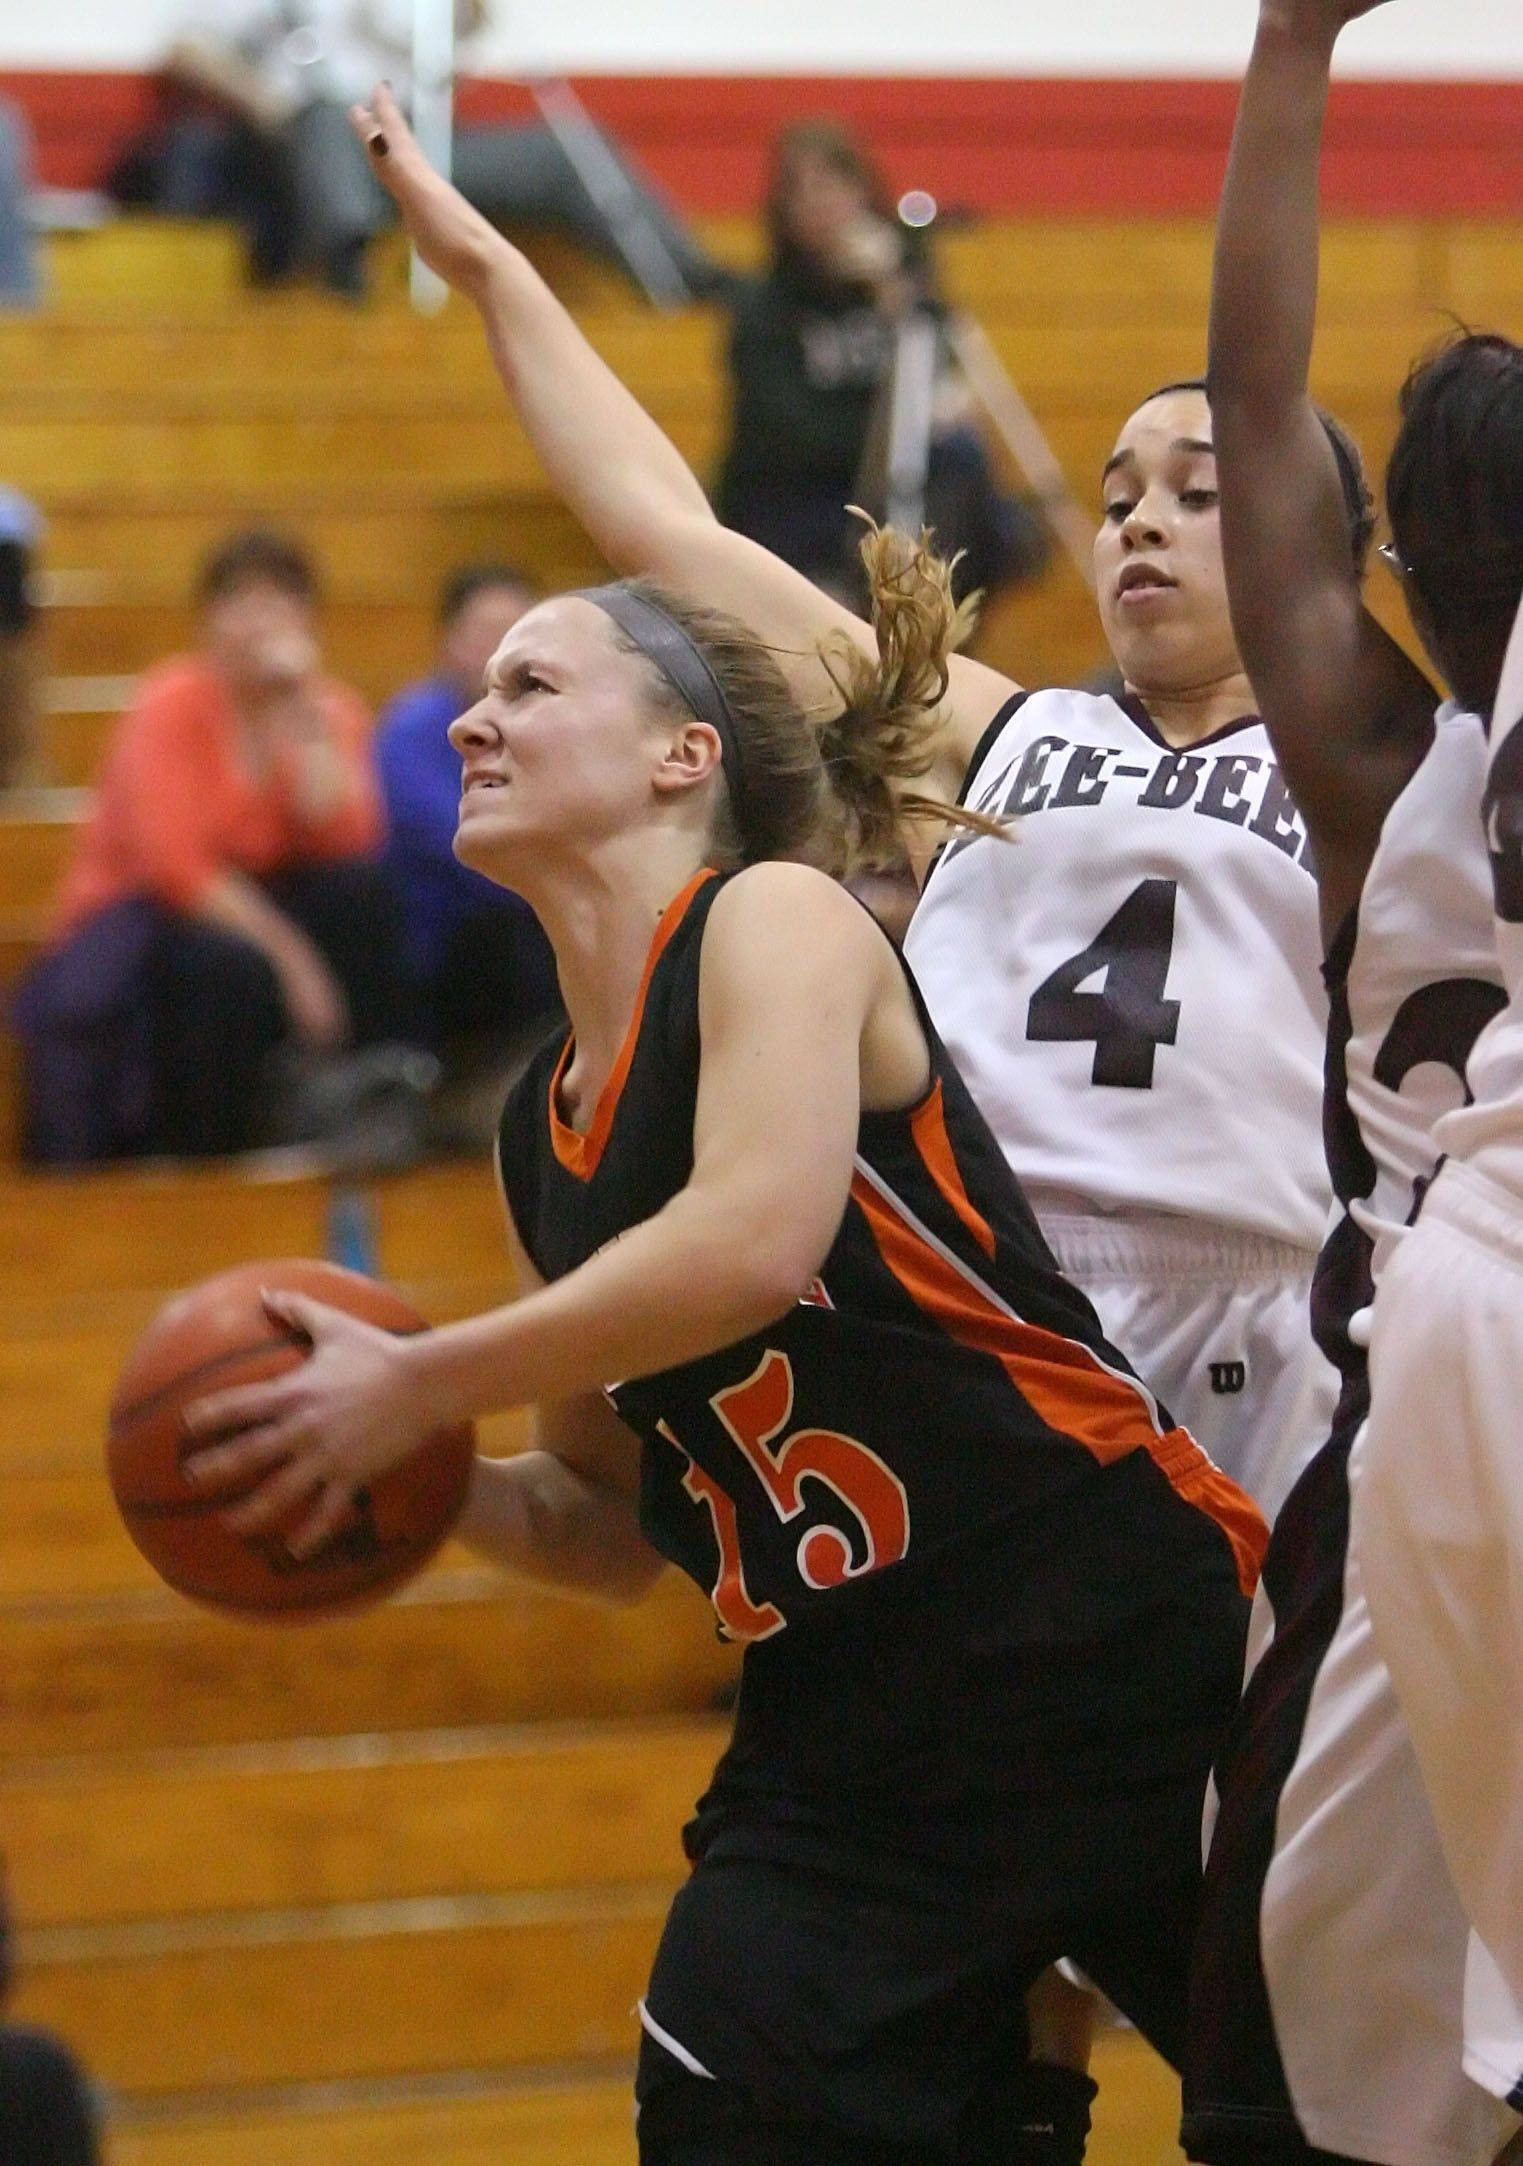 Libertyville's Alex Haley, left, drives on Zion-Benton's Morgan Franklin on Wednesday night at Mundelein.